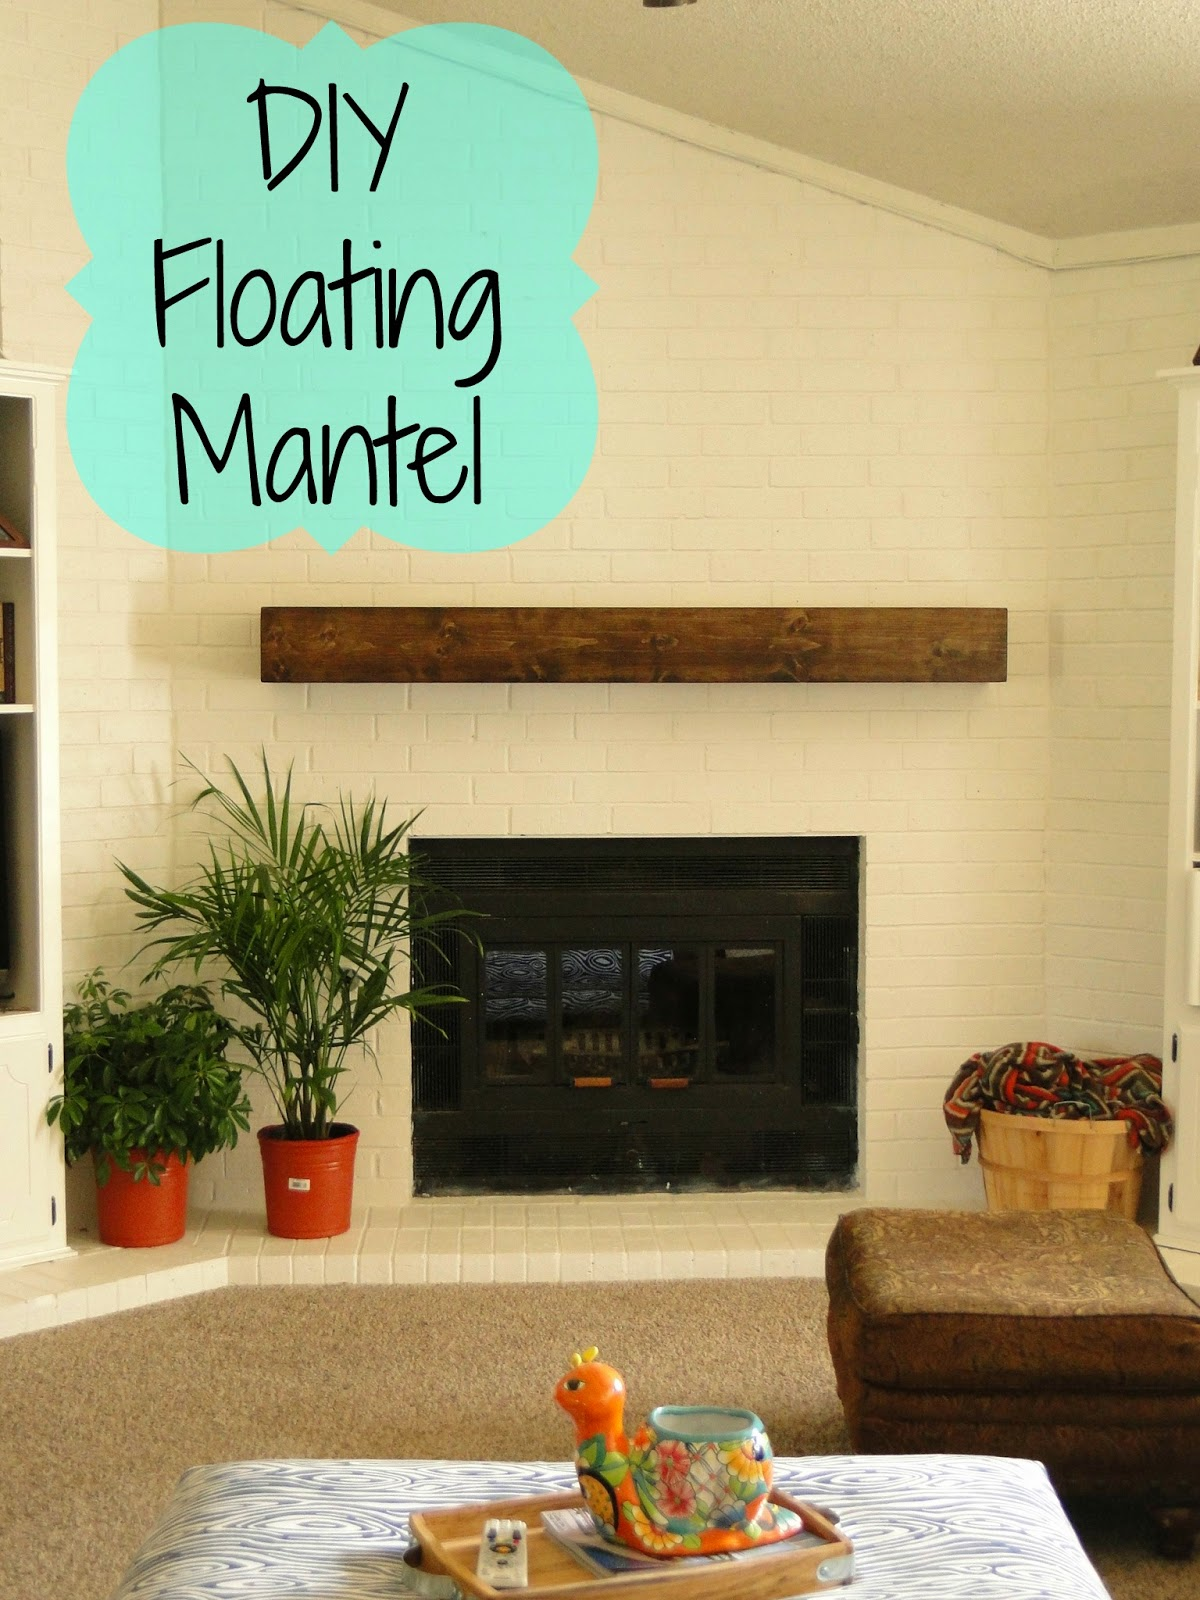 DIY floating mantel